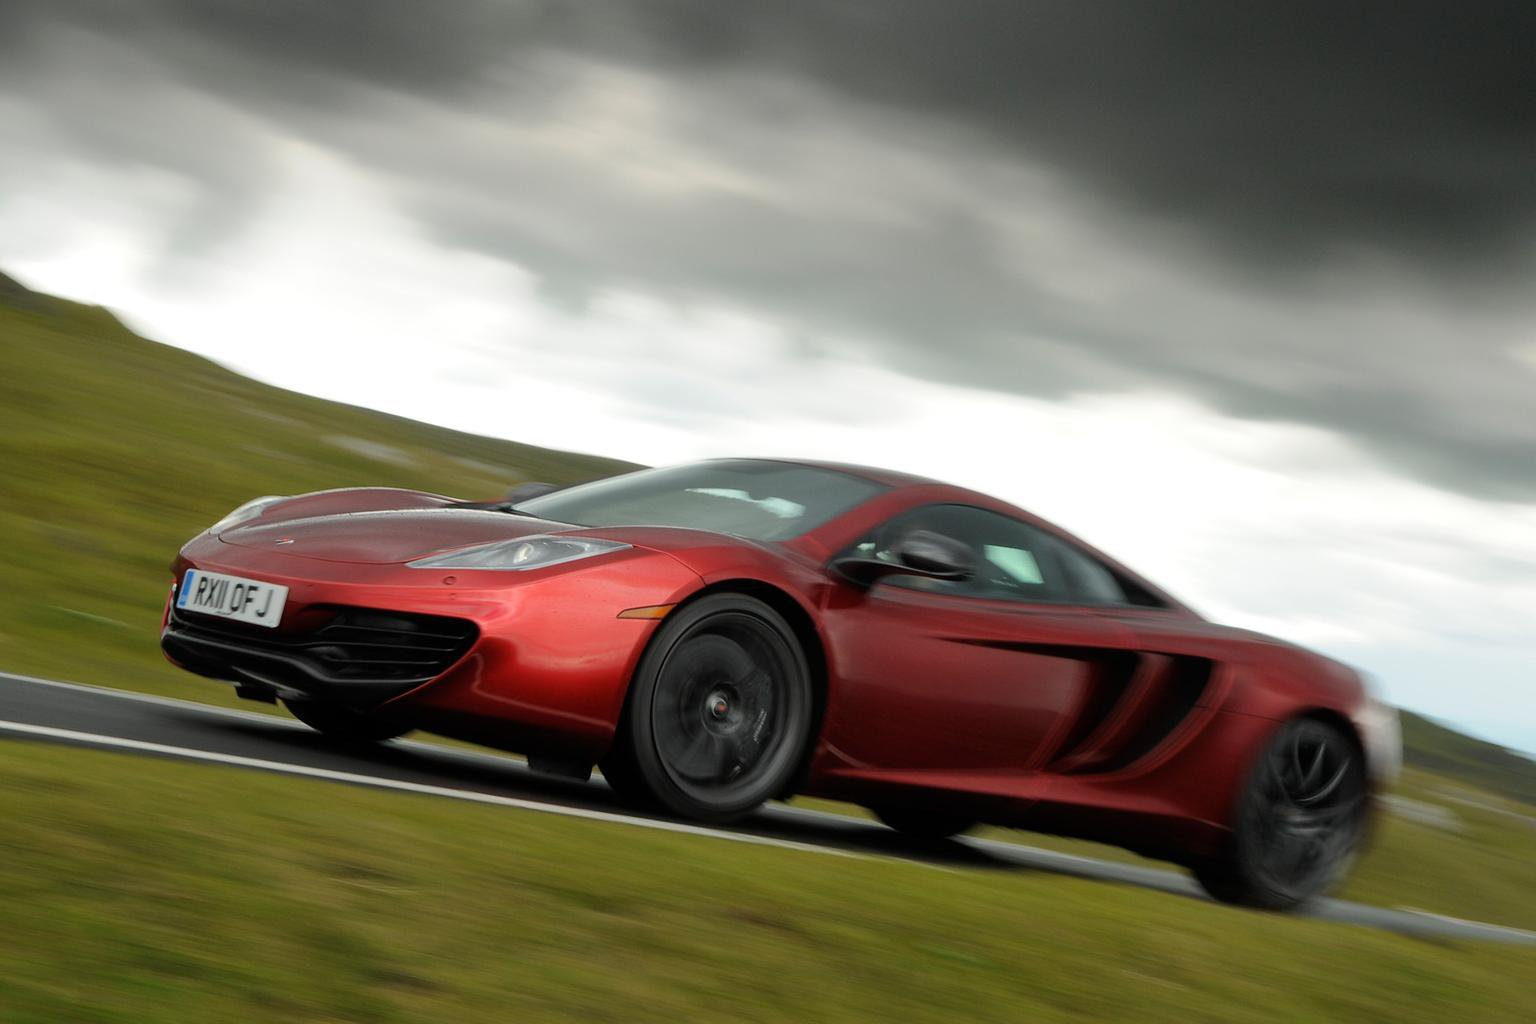 News roundup: McLaren axes 12C, and Lexus NX at Beijing